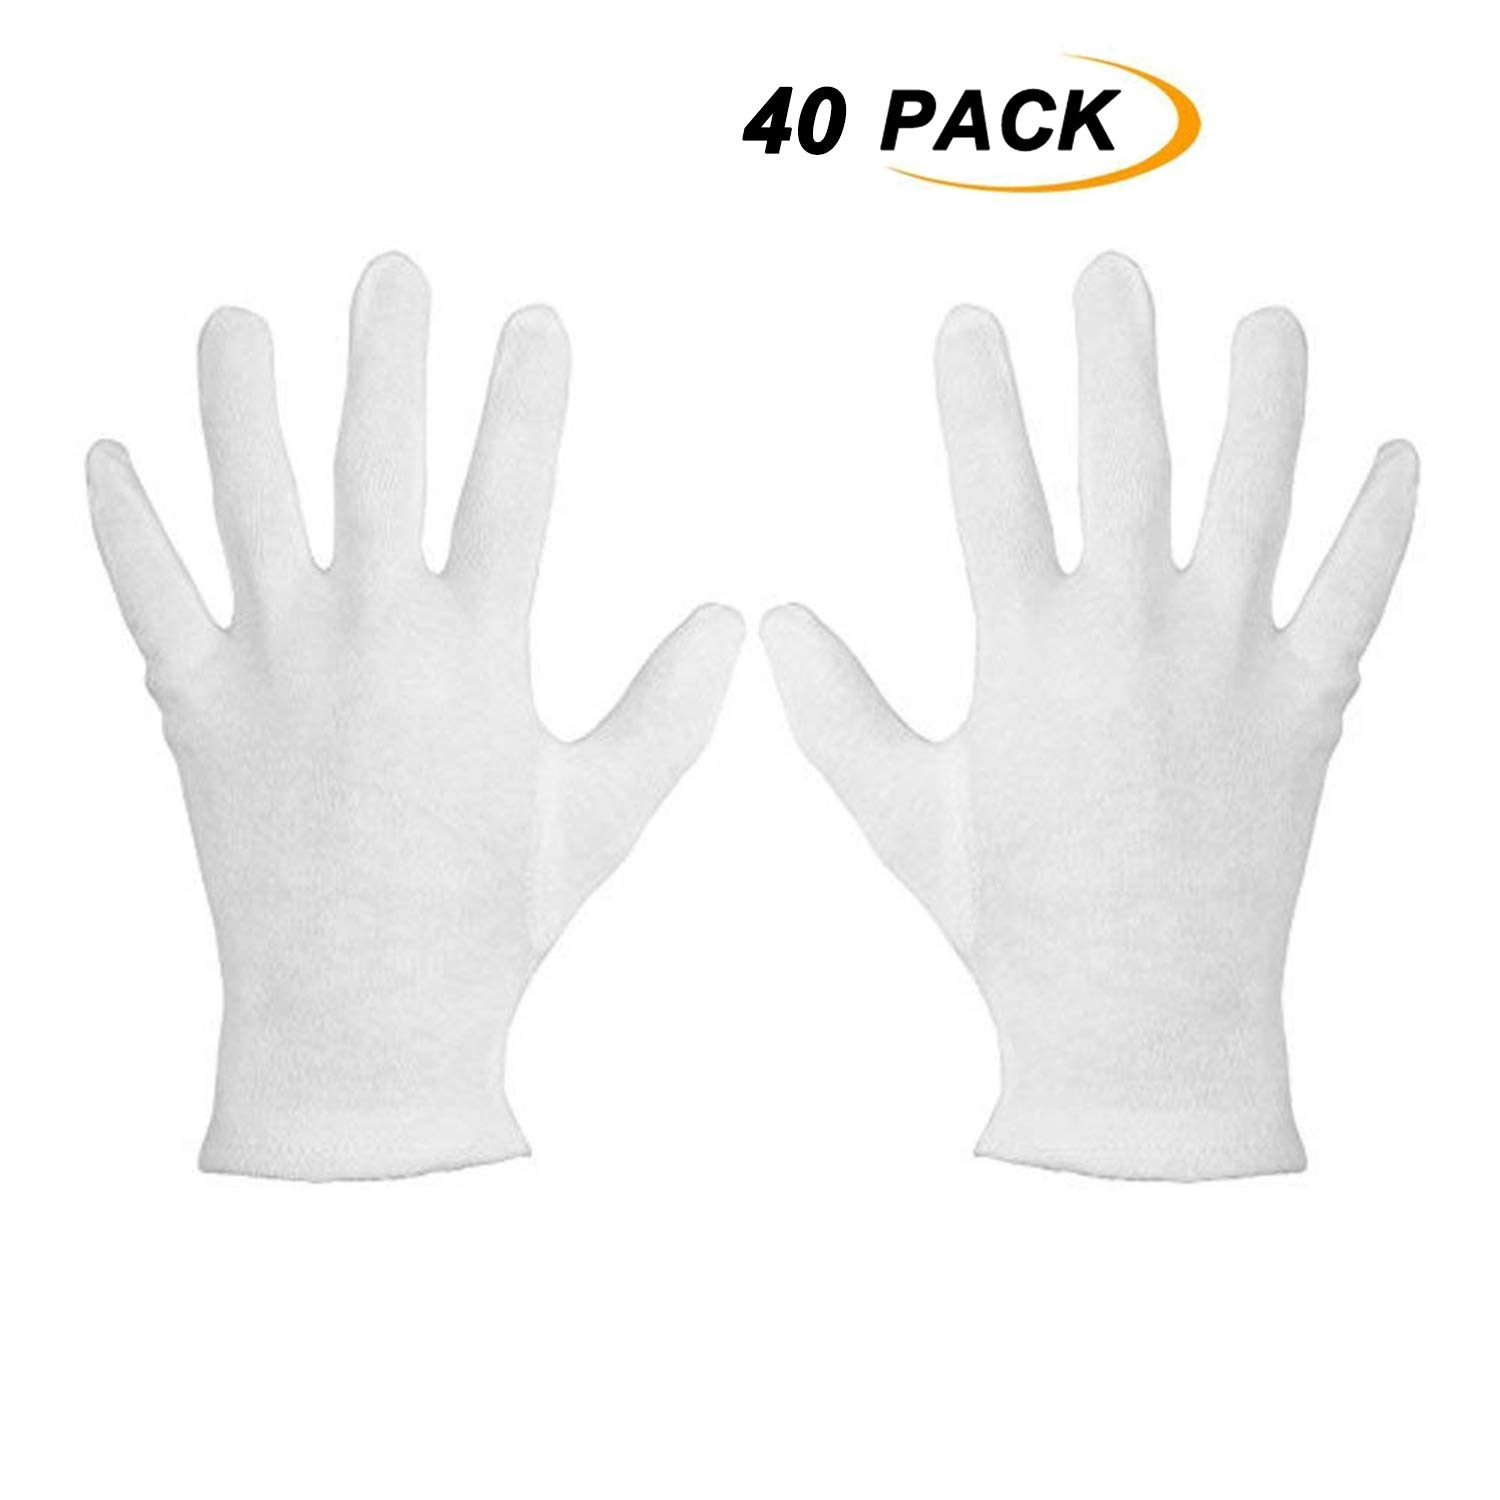 HUO ZAO White 100% Cotton Line Gloves, for Garden and Marching Band, Hotel Catering and Caterers, Motorcycle and Bicycle Repairing - Medium 40 Pack